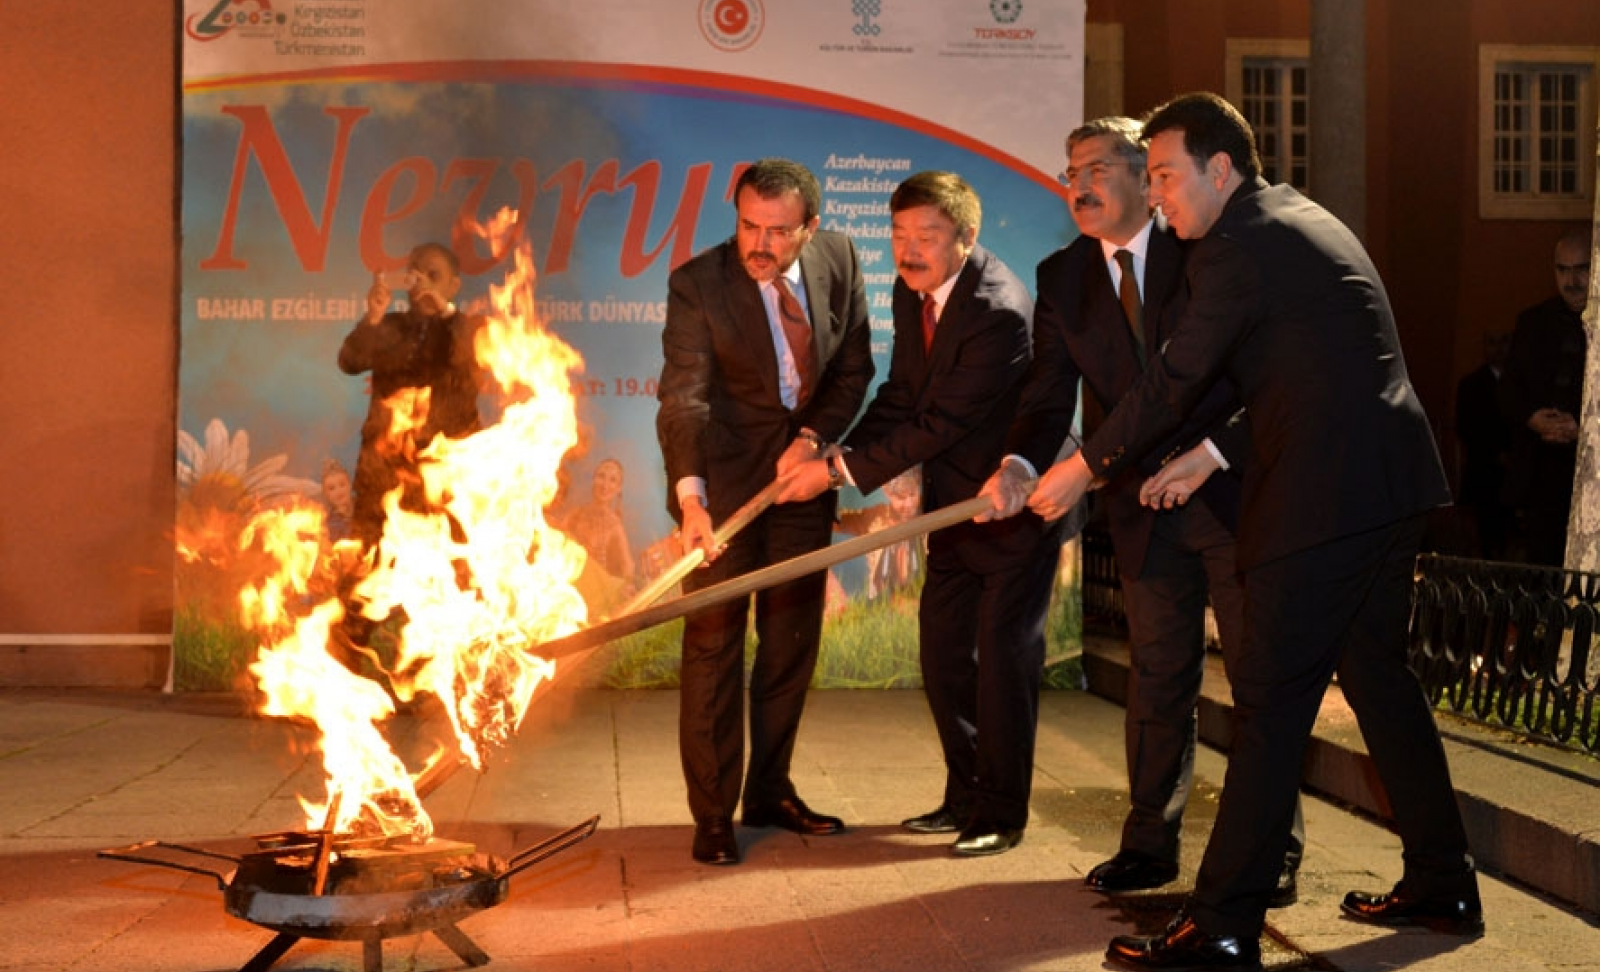 The Nowruz Bonfire was lit by the Minister of Culture and Tourism of the Republic of Turkey Mr. Mahir Unal